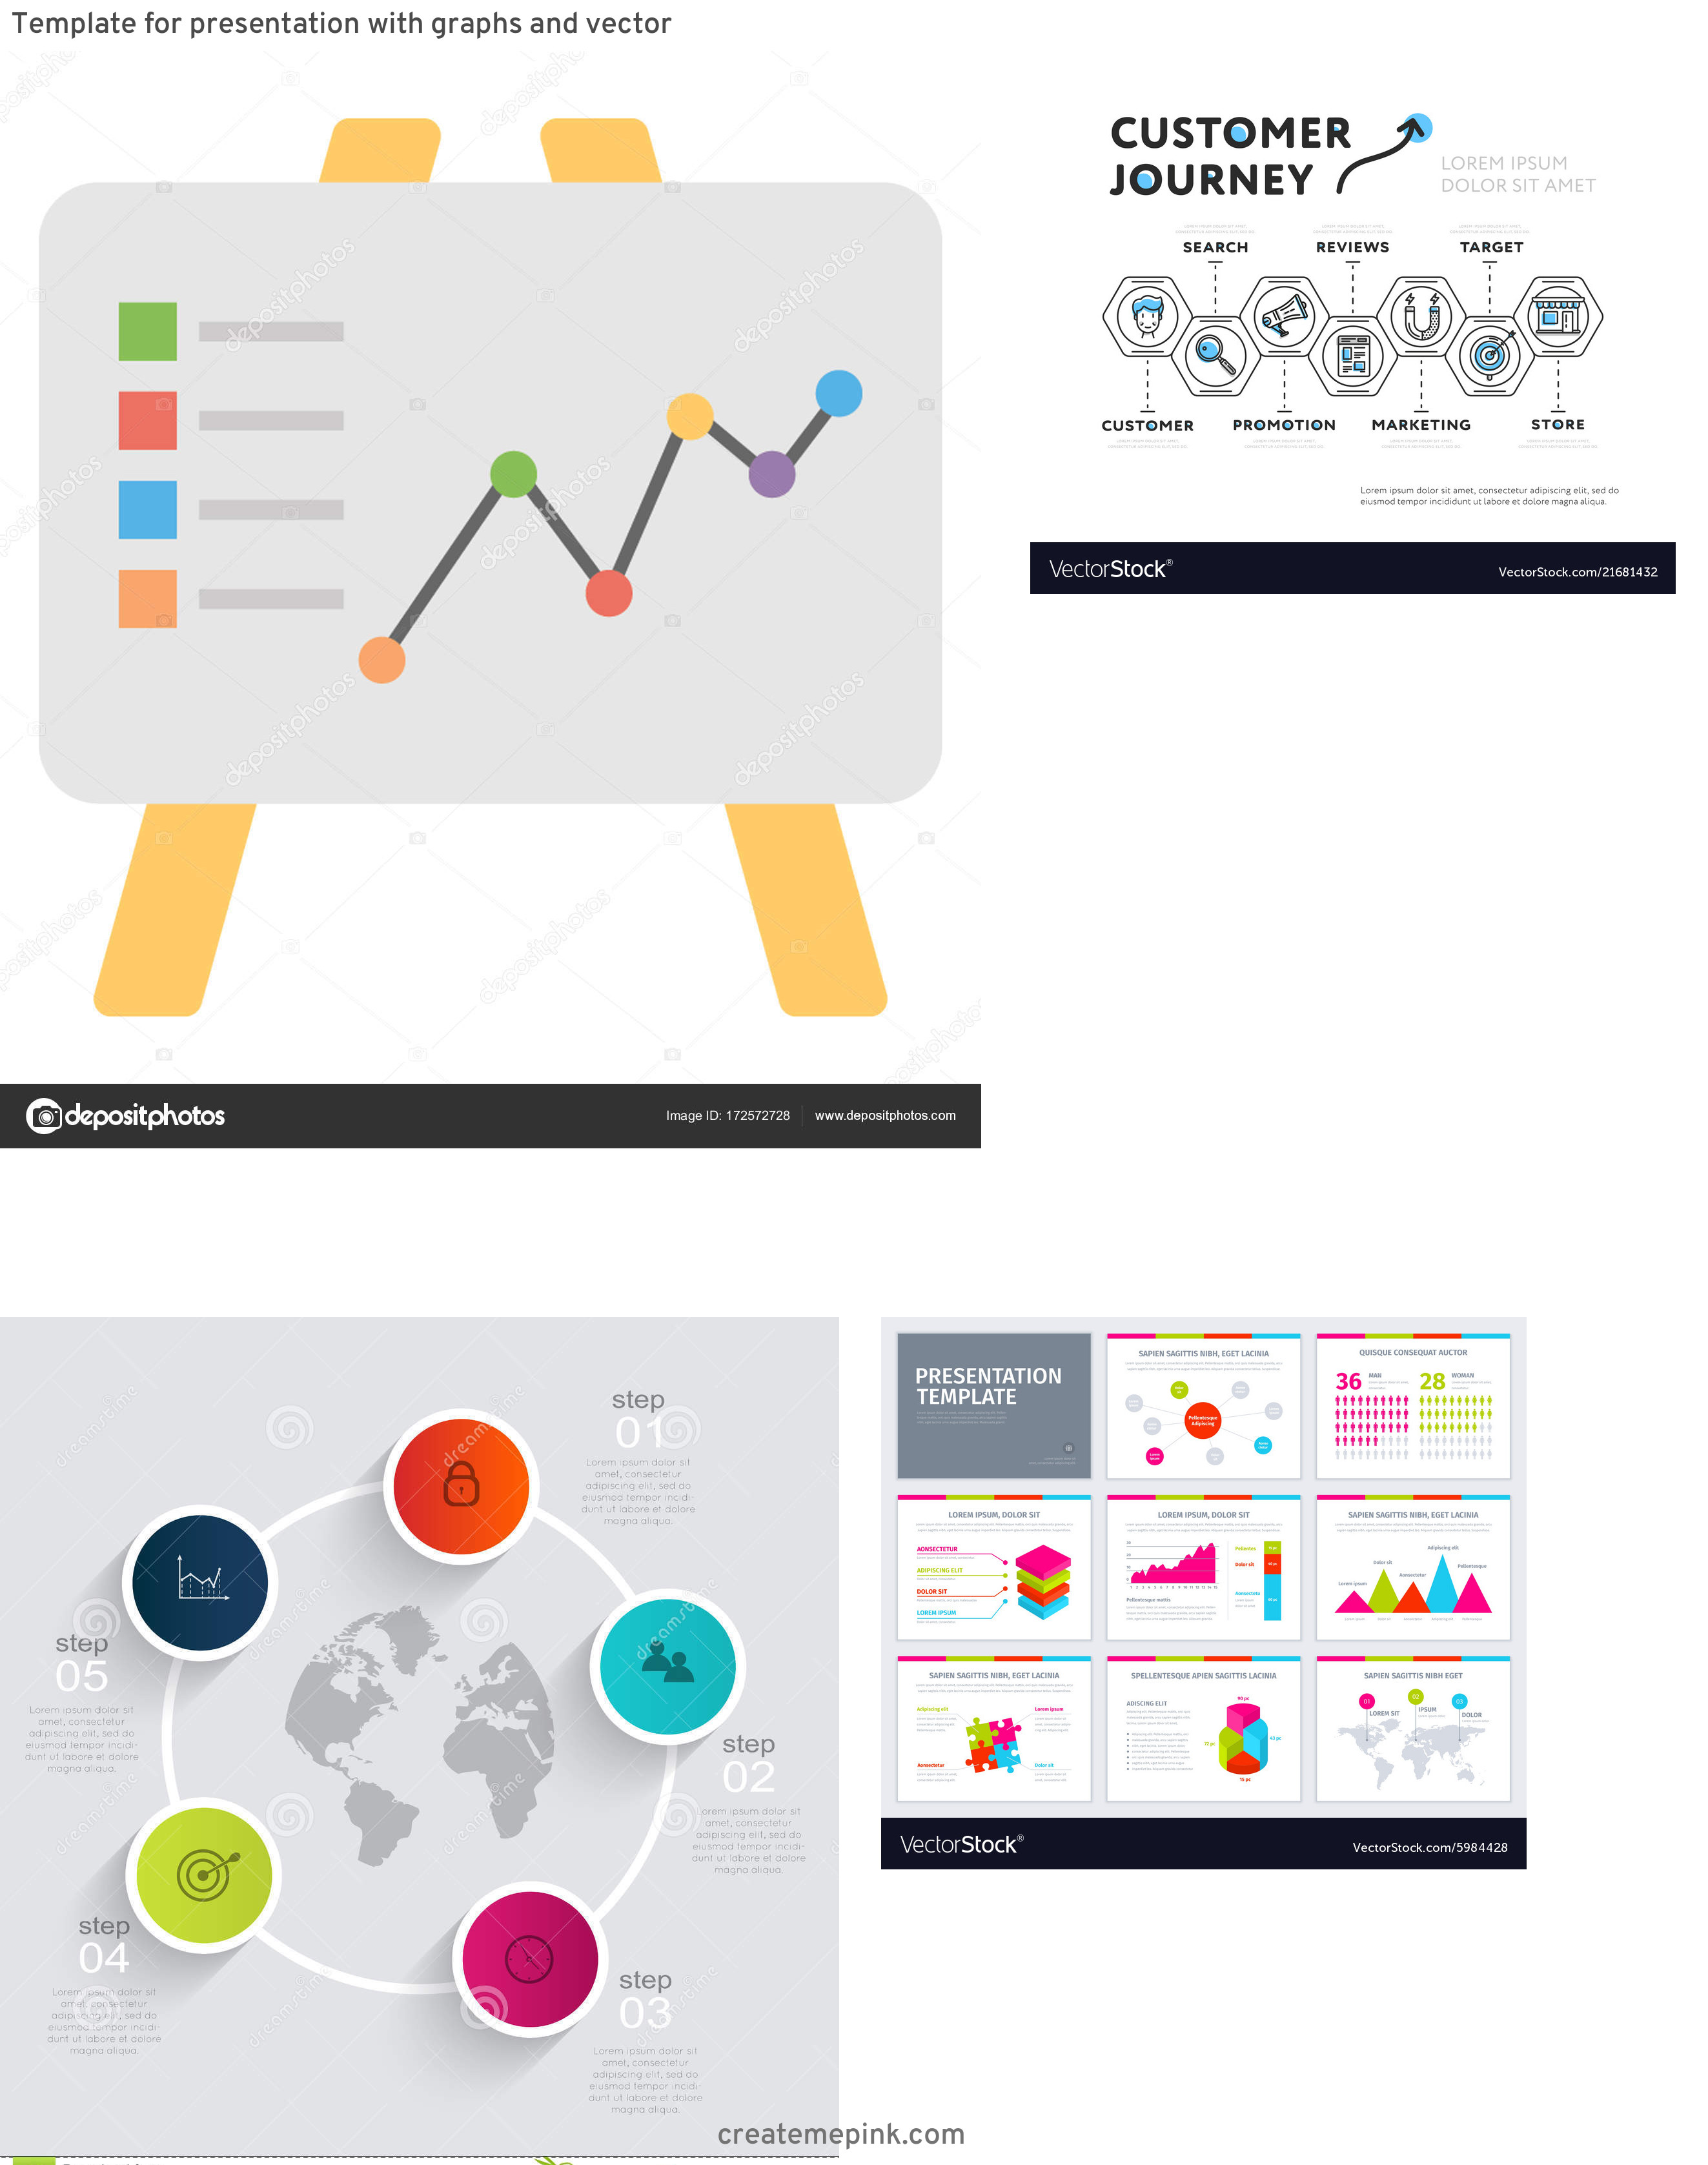 Vector Graphic Presentation: Template For Presentation With Graphs And Vector